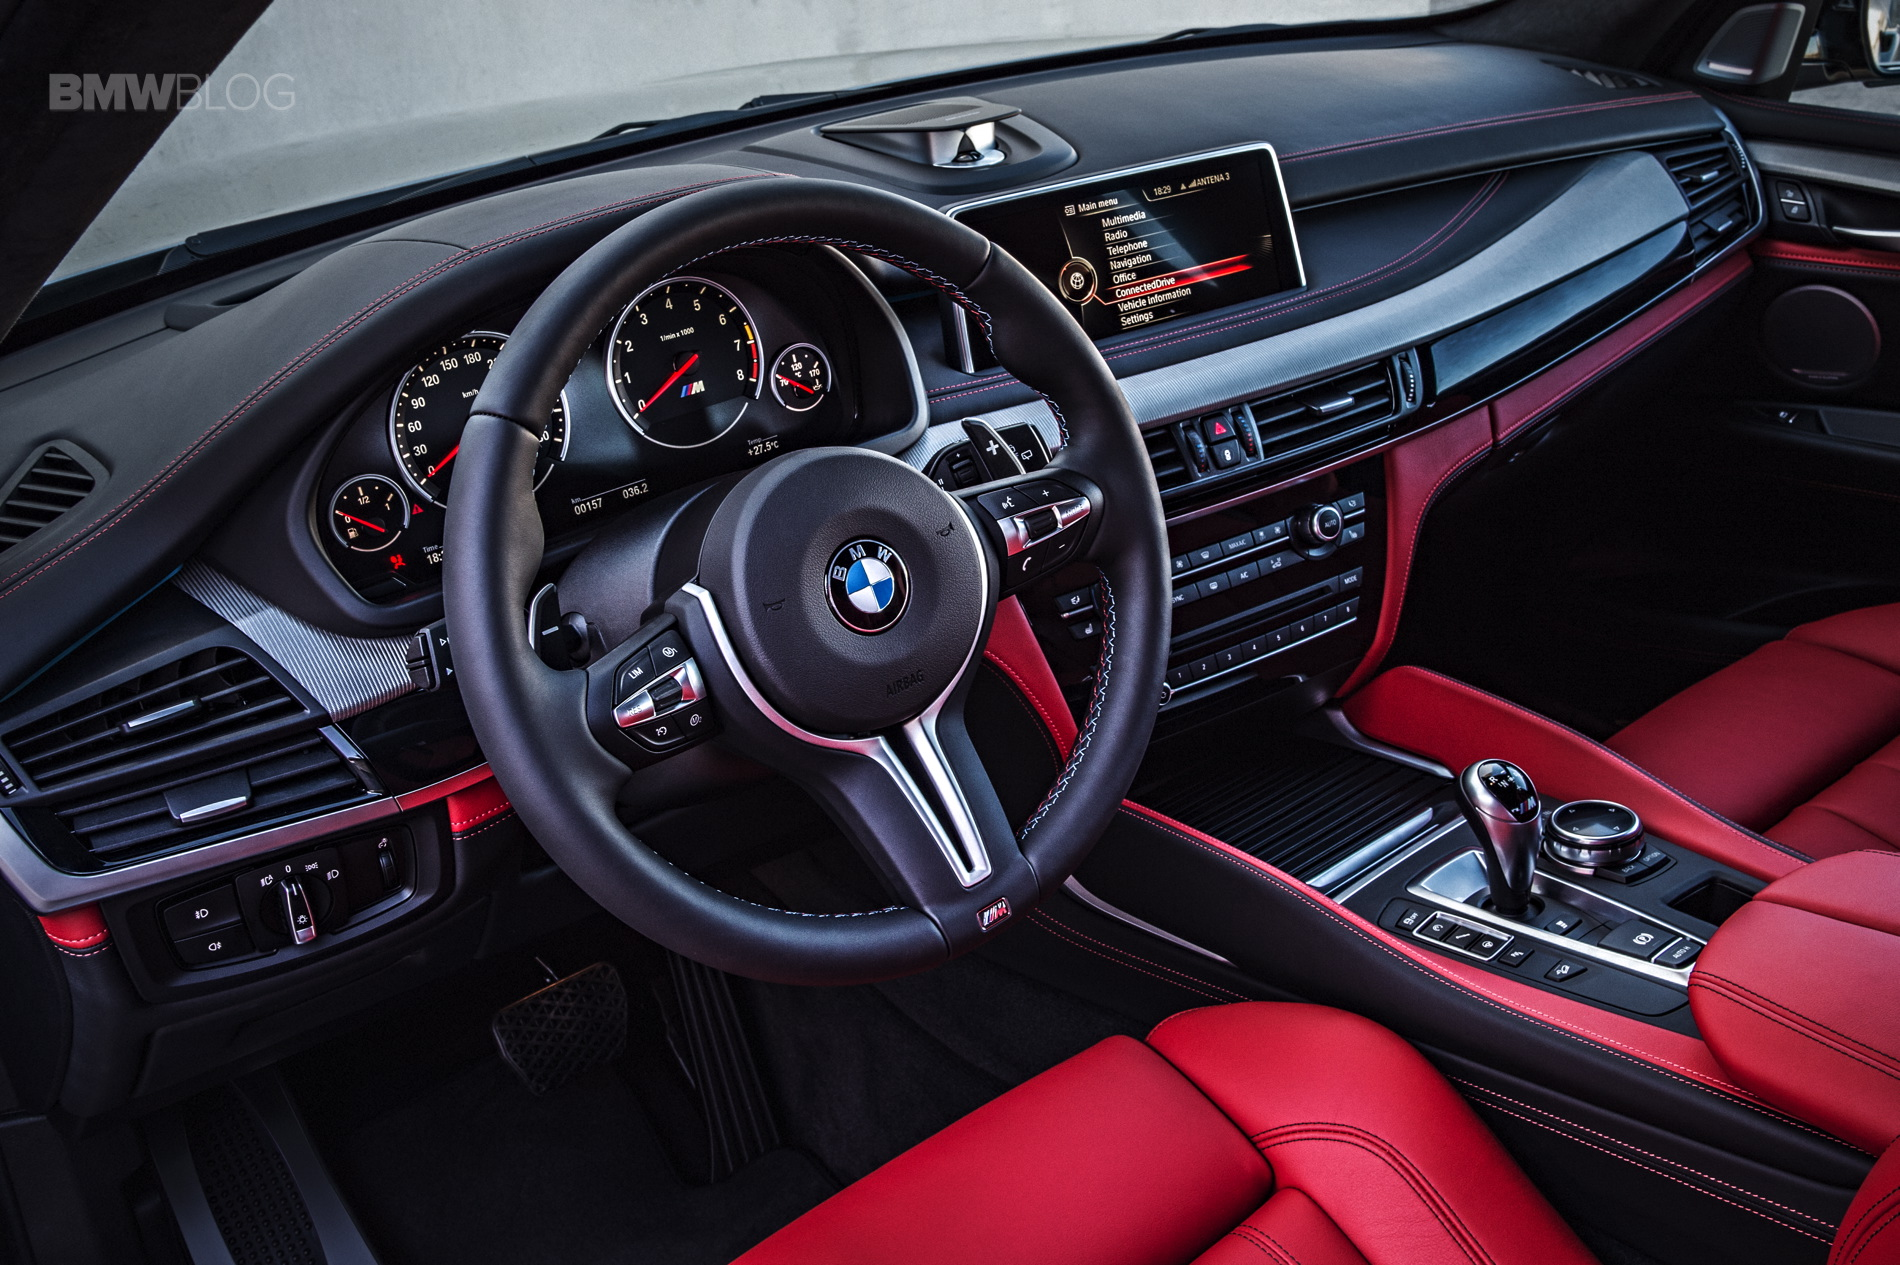 2017 Bmw X6 White Red Interior Www Indiepedia Org